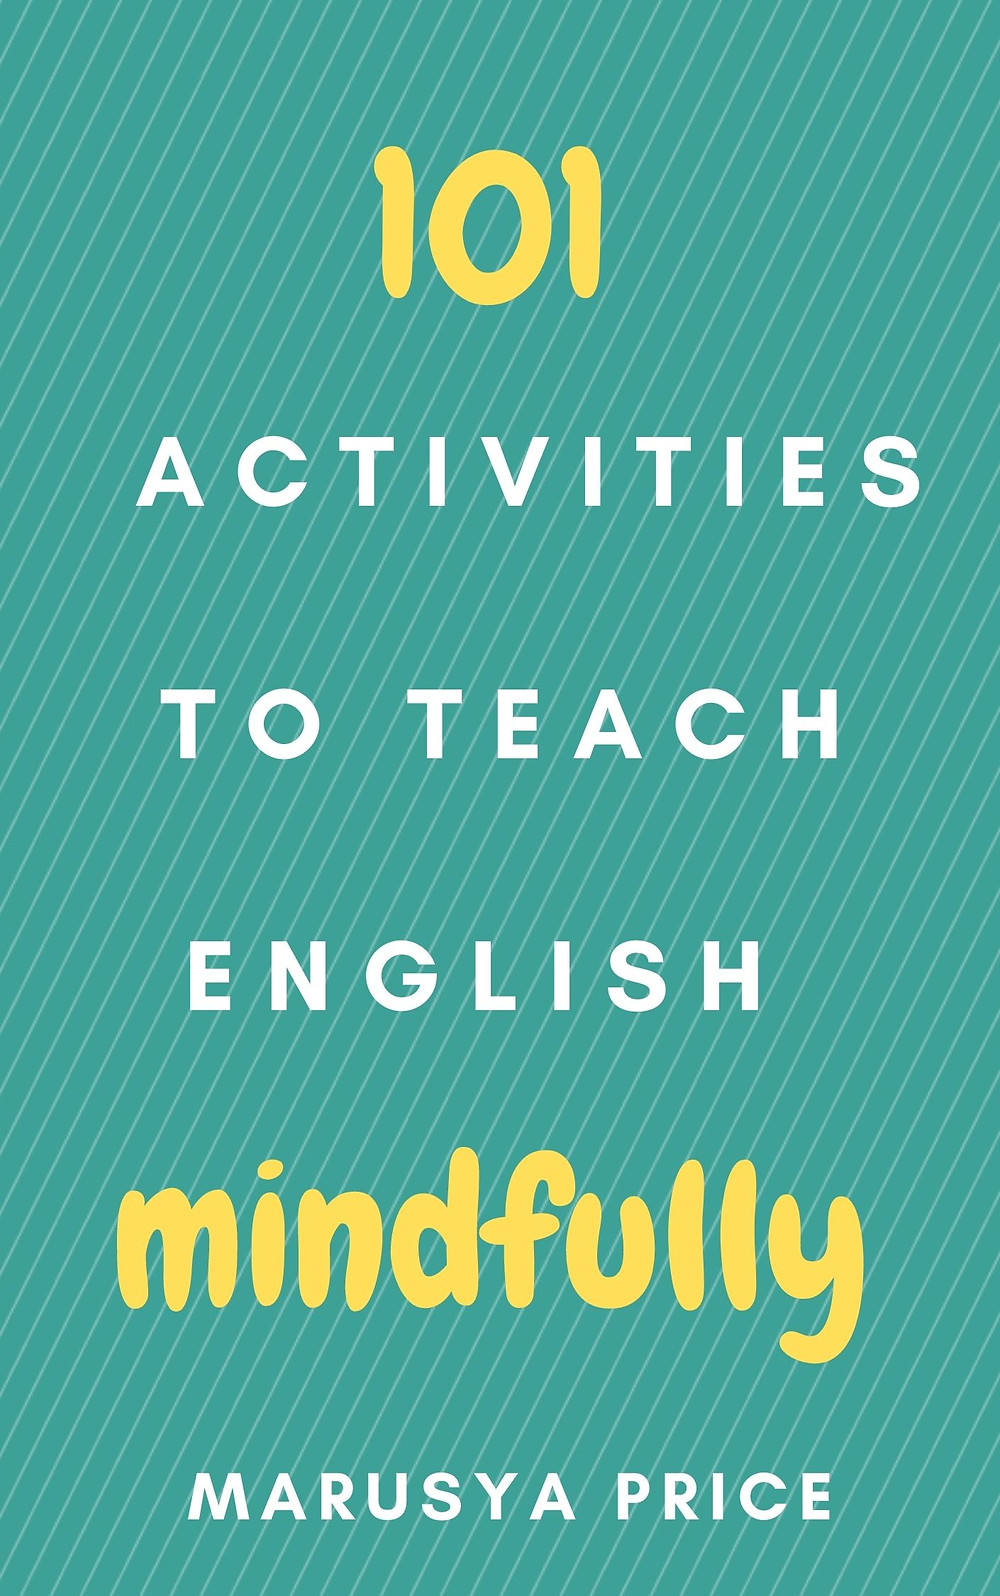 101 activities to teach English mindfully